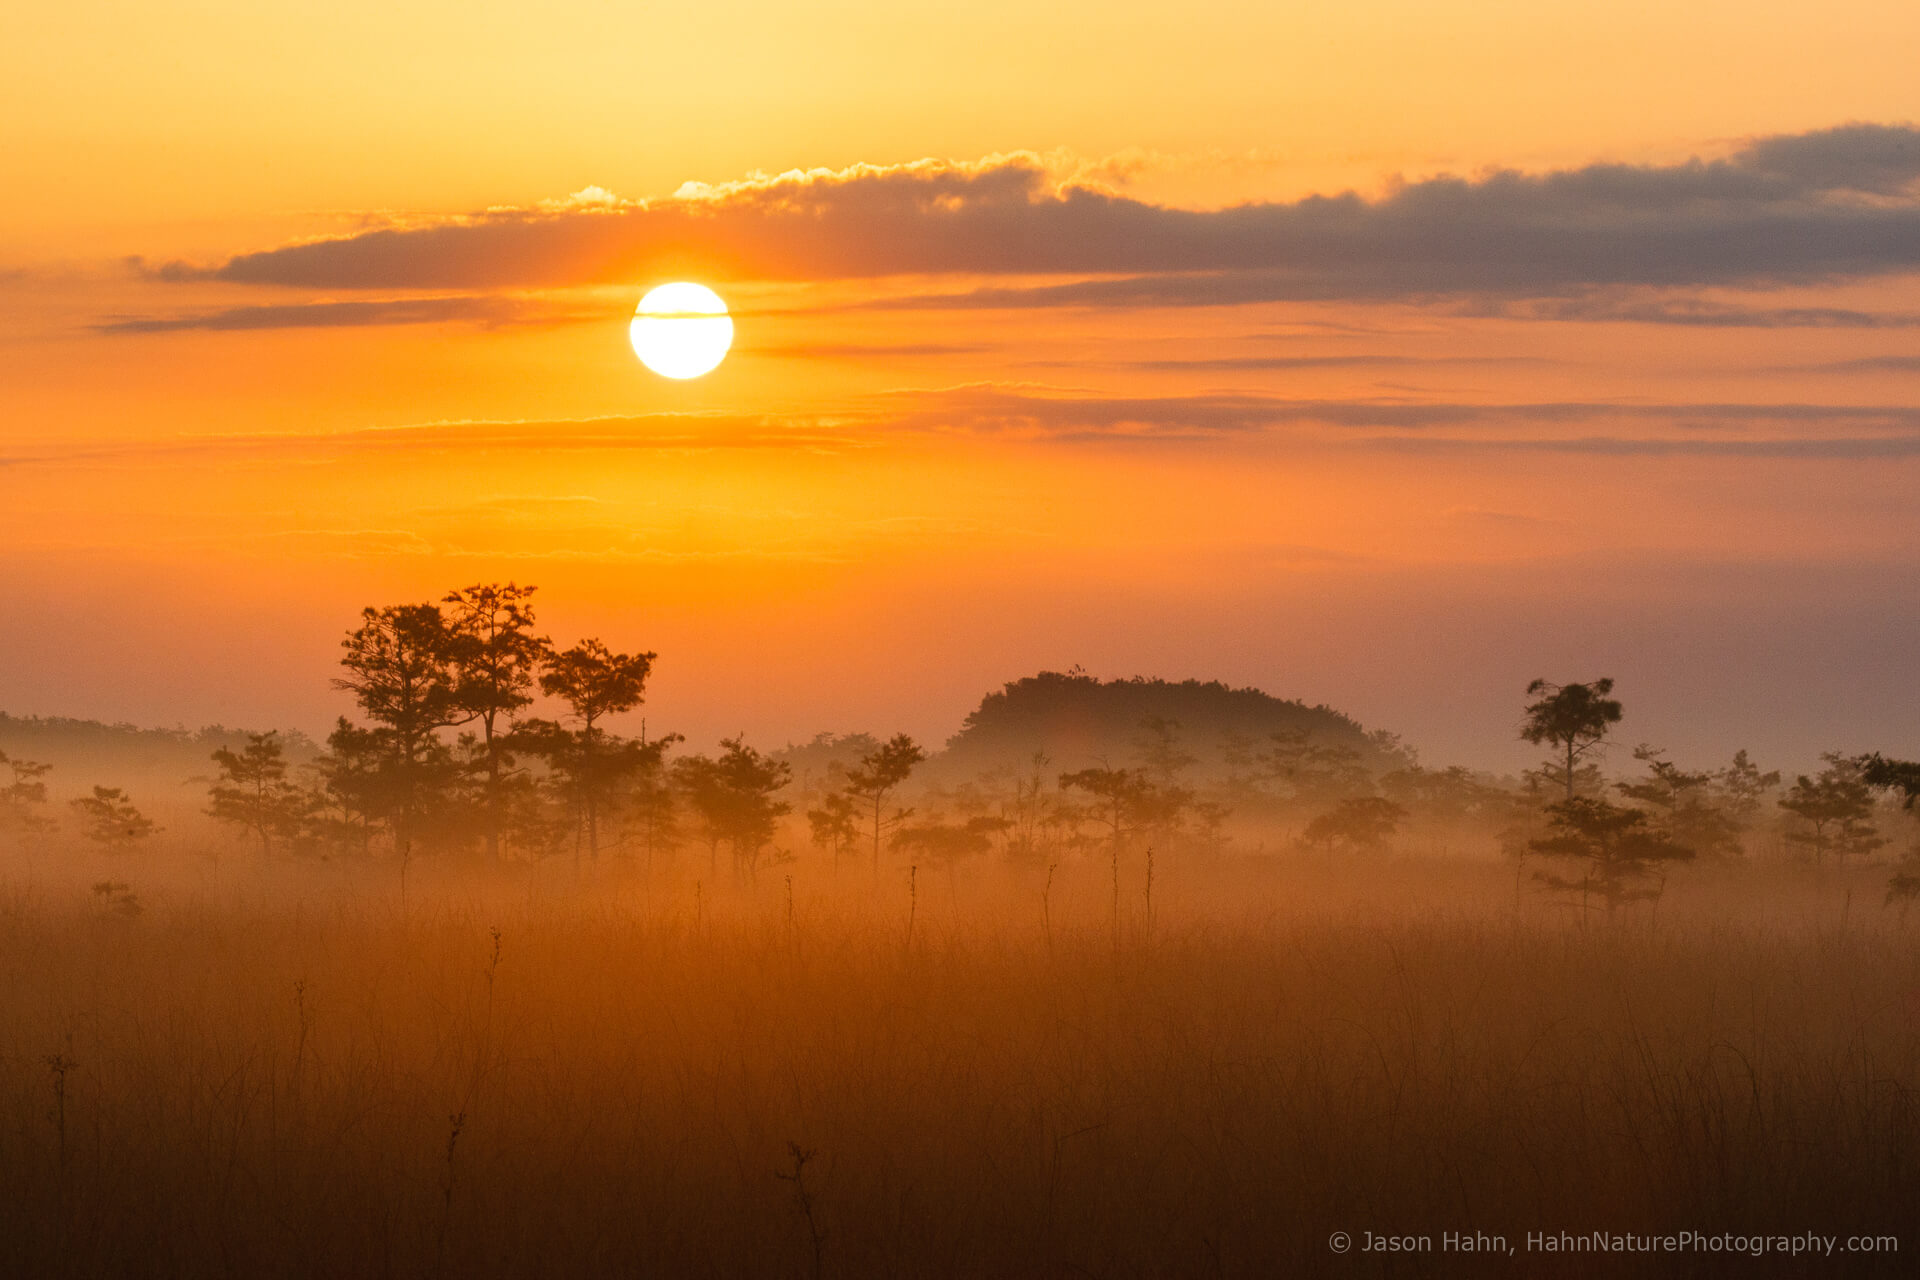 Sunrise on a foggy morning in the Everglades.    Low ground fog like this really adds dimension to images, creating scale and a sense of depth.